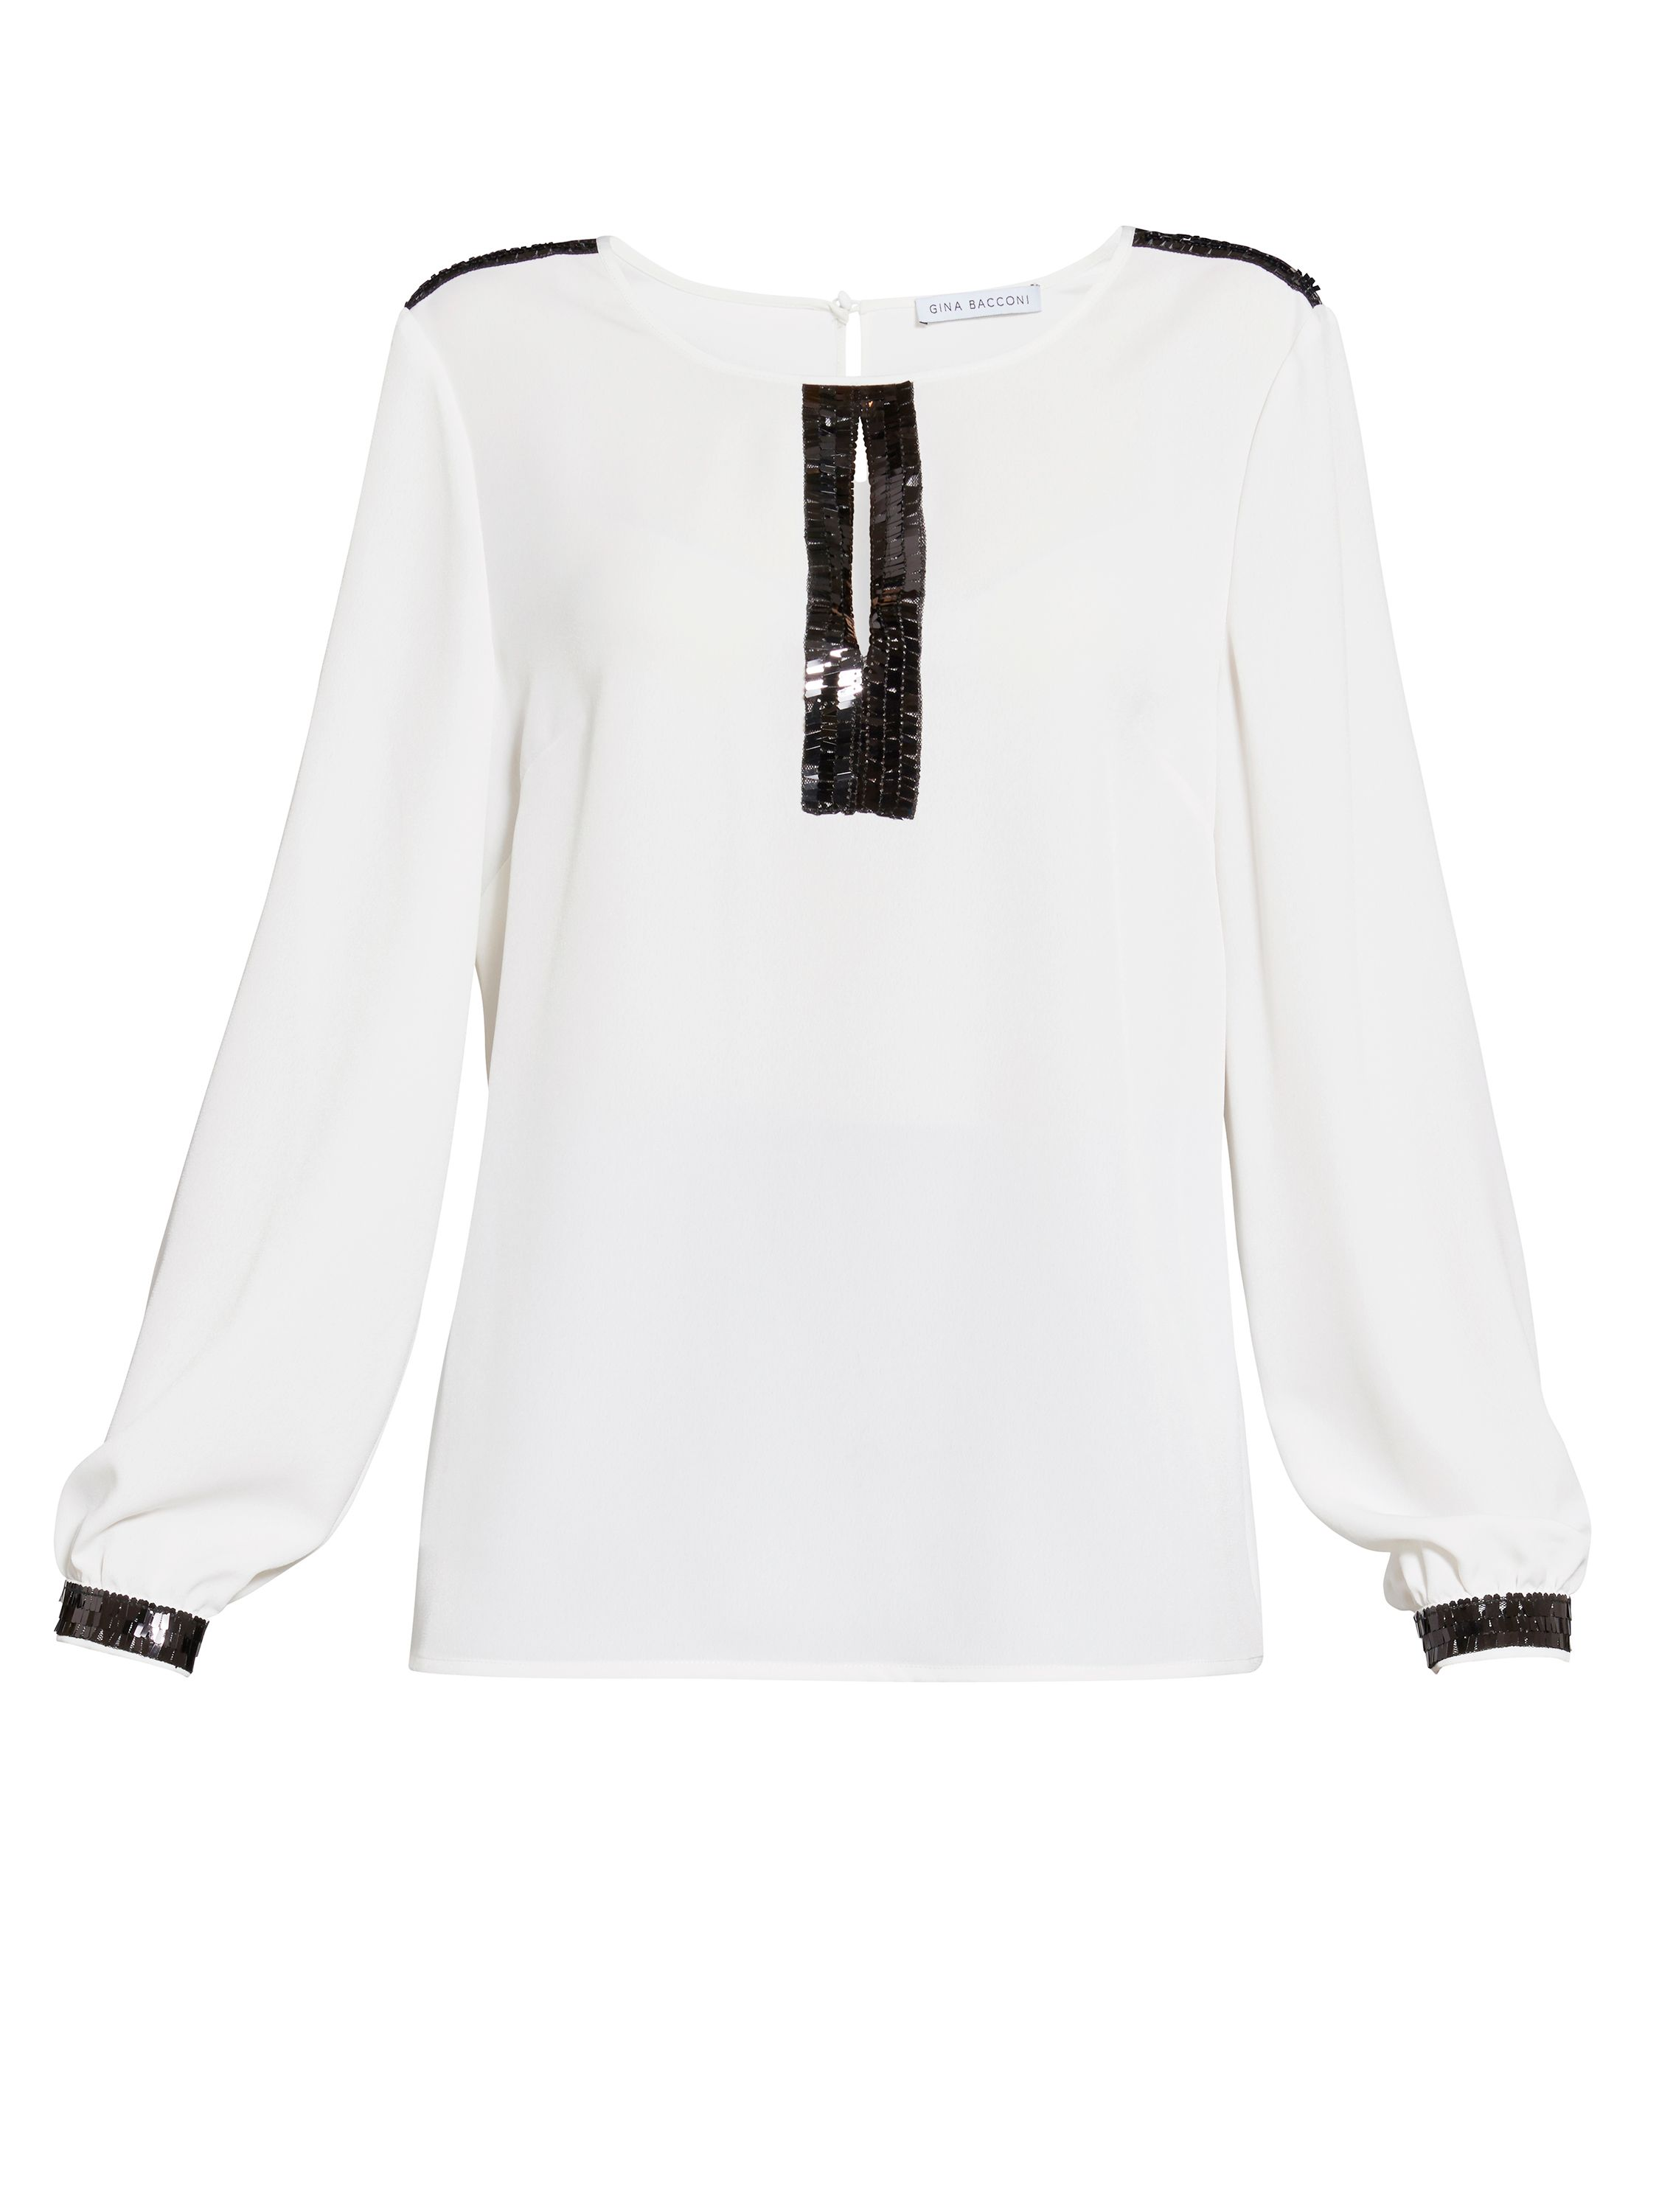 Gina Bacconi Soho Crepe Blouse with Sequin Trim, Cream